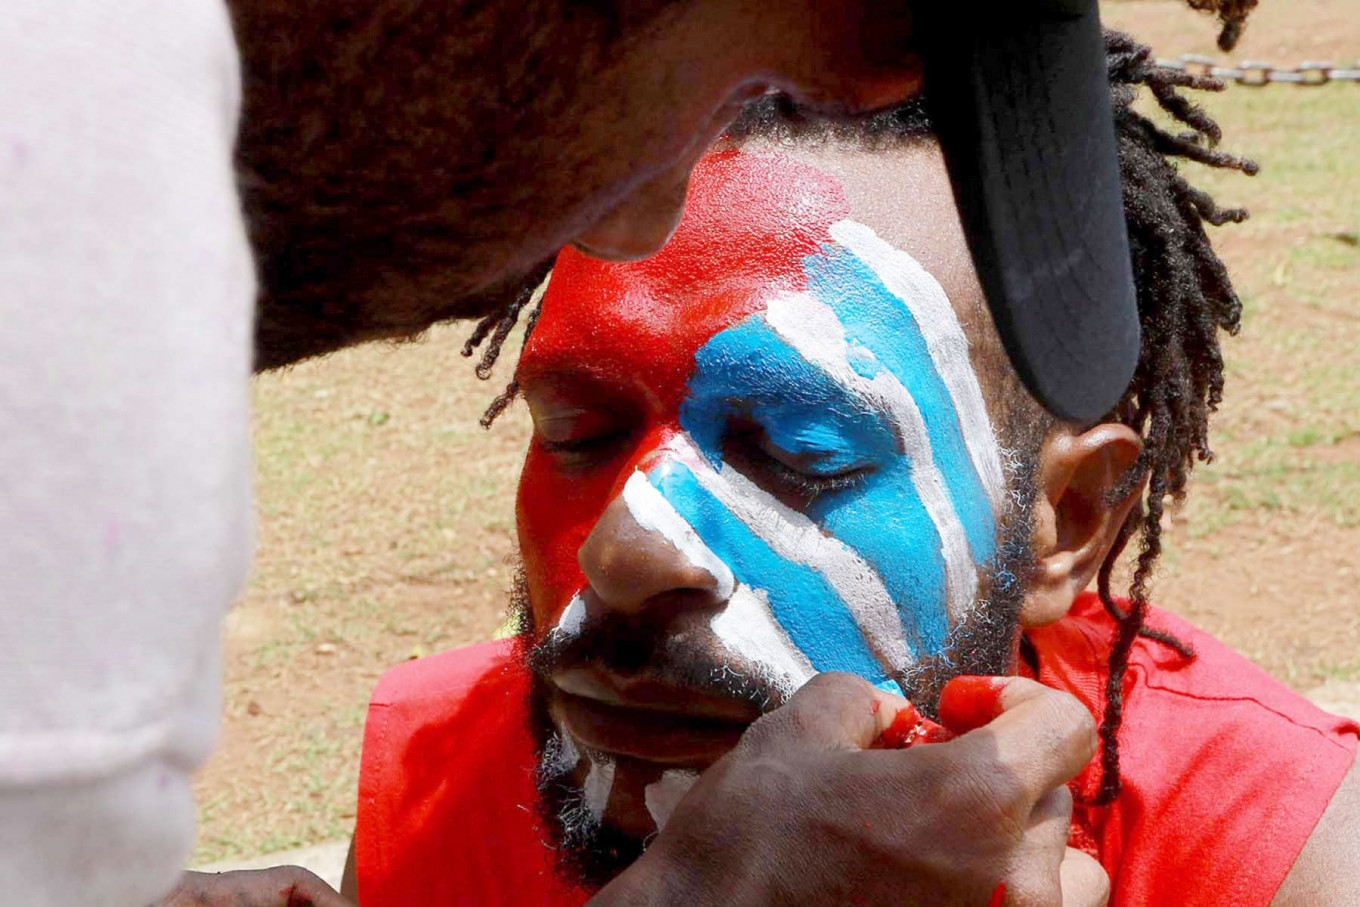 Justice seekers: A Papuan Students Alliance (AMP) member has his face painted with the colors of the Bintang Kejora (Morning Star) flag during a protest on Jl Medan Merdeka Barat, Central Jakarta on Nov. 16. The protesters demanded that the government thoroughly investigate the killing of Papuan pastor Yeremia Zanambani in Intan Jaya, Papua, and withdraw military and police personnel from the country's easternmost province. JP/ Dhoni Setiawan